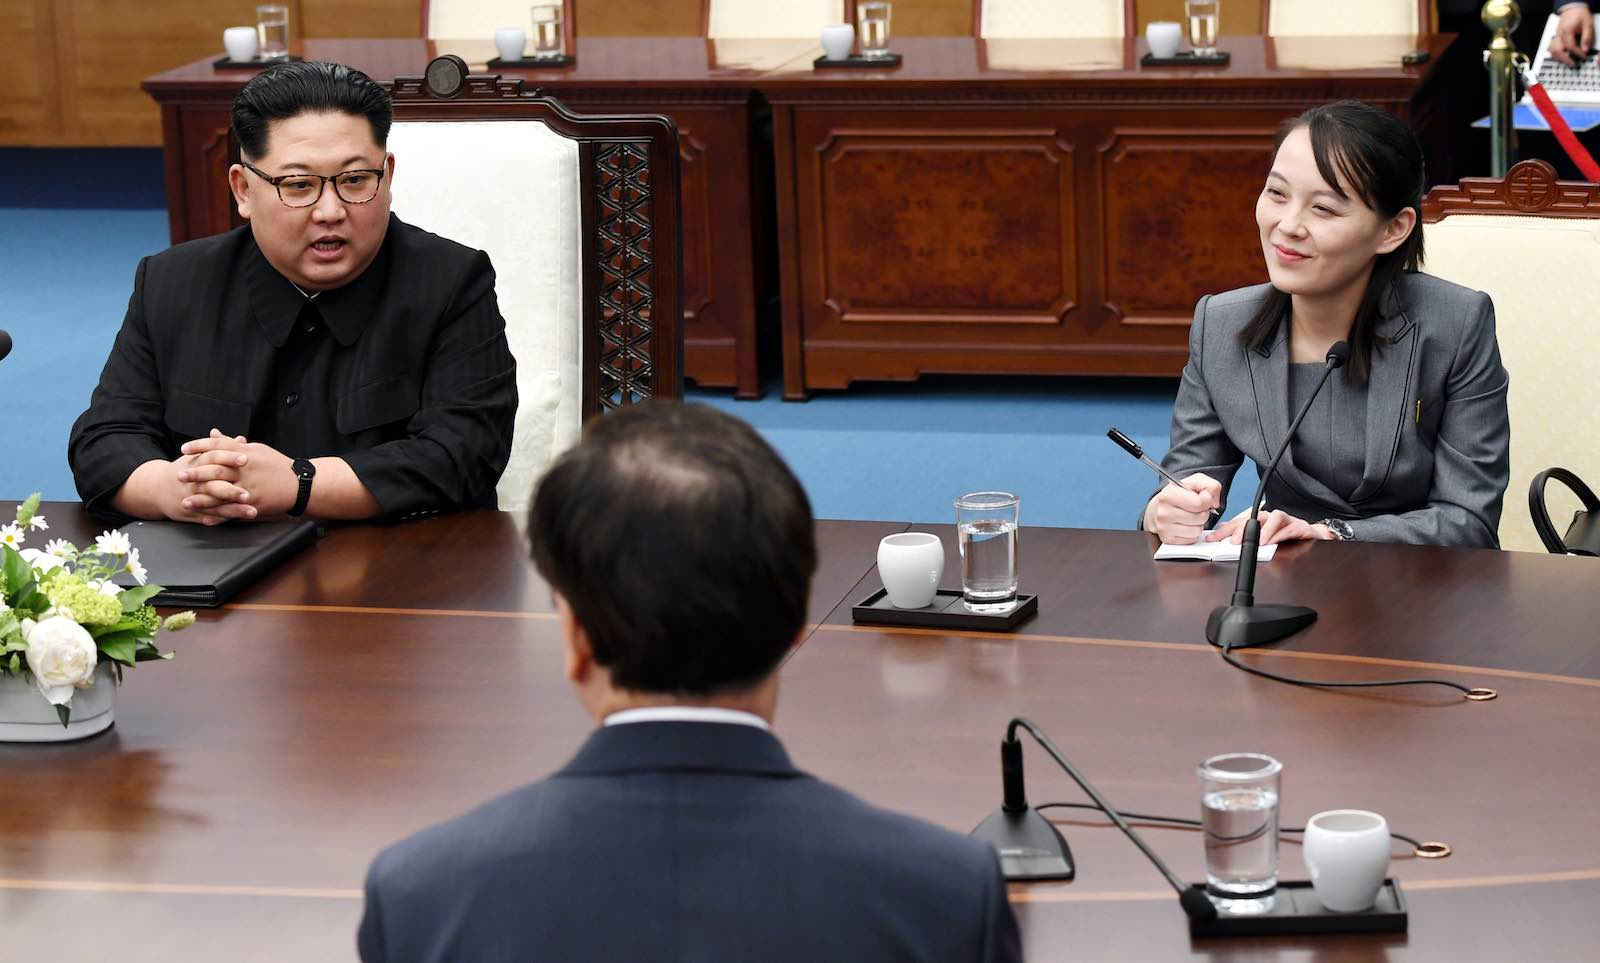 North Korean Leader Kim Jong-un and his sister Kim Yo-jong at the 2018 Inter-Korean Summit atPanmunjom (Getty Images)